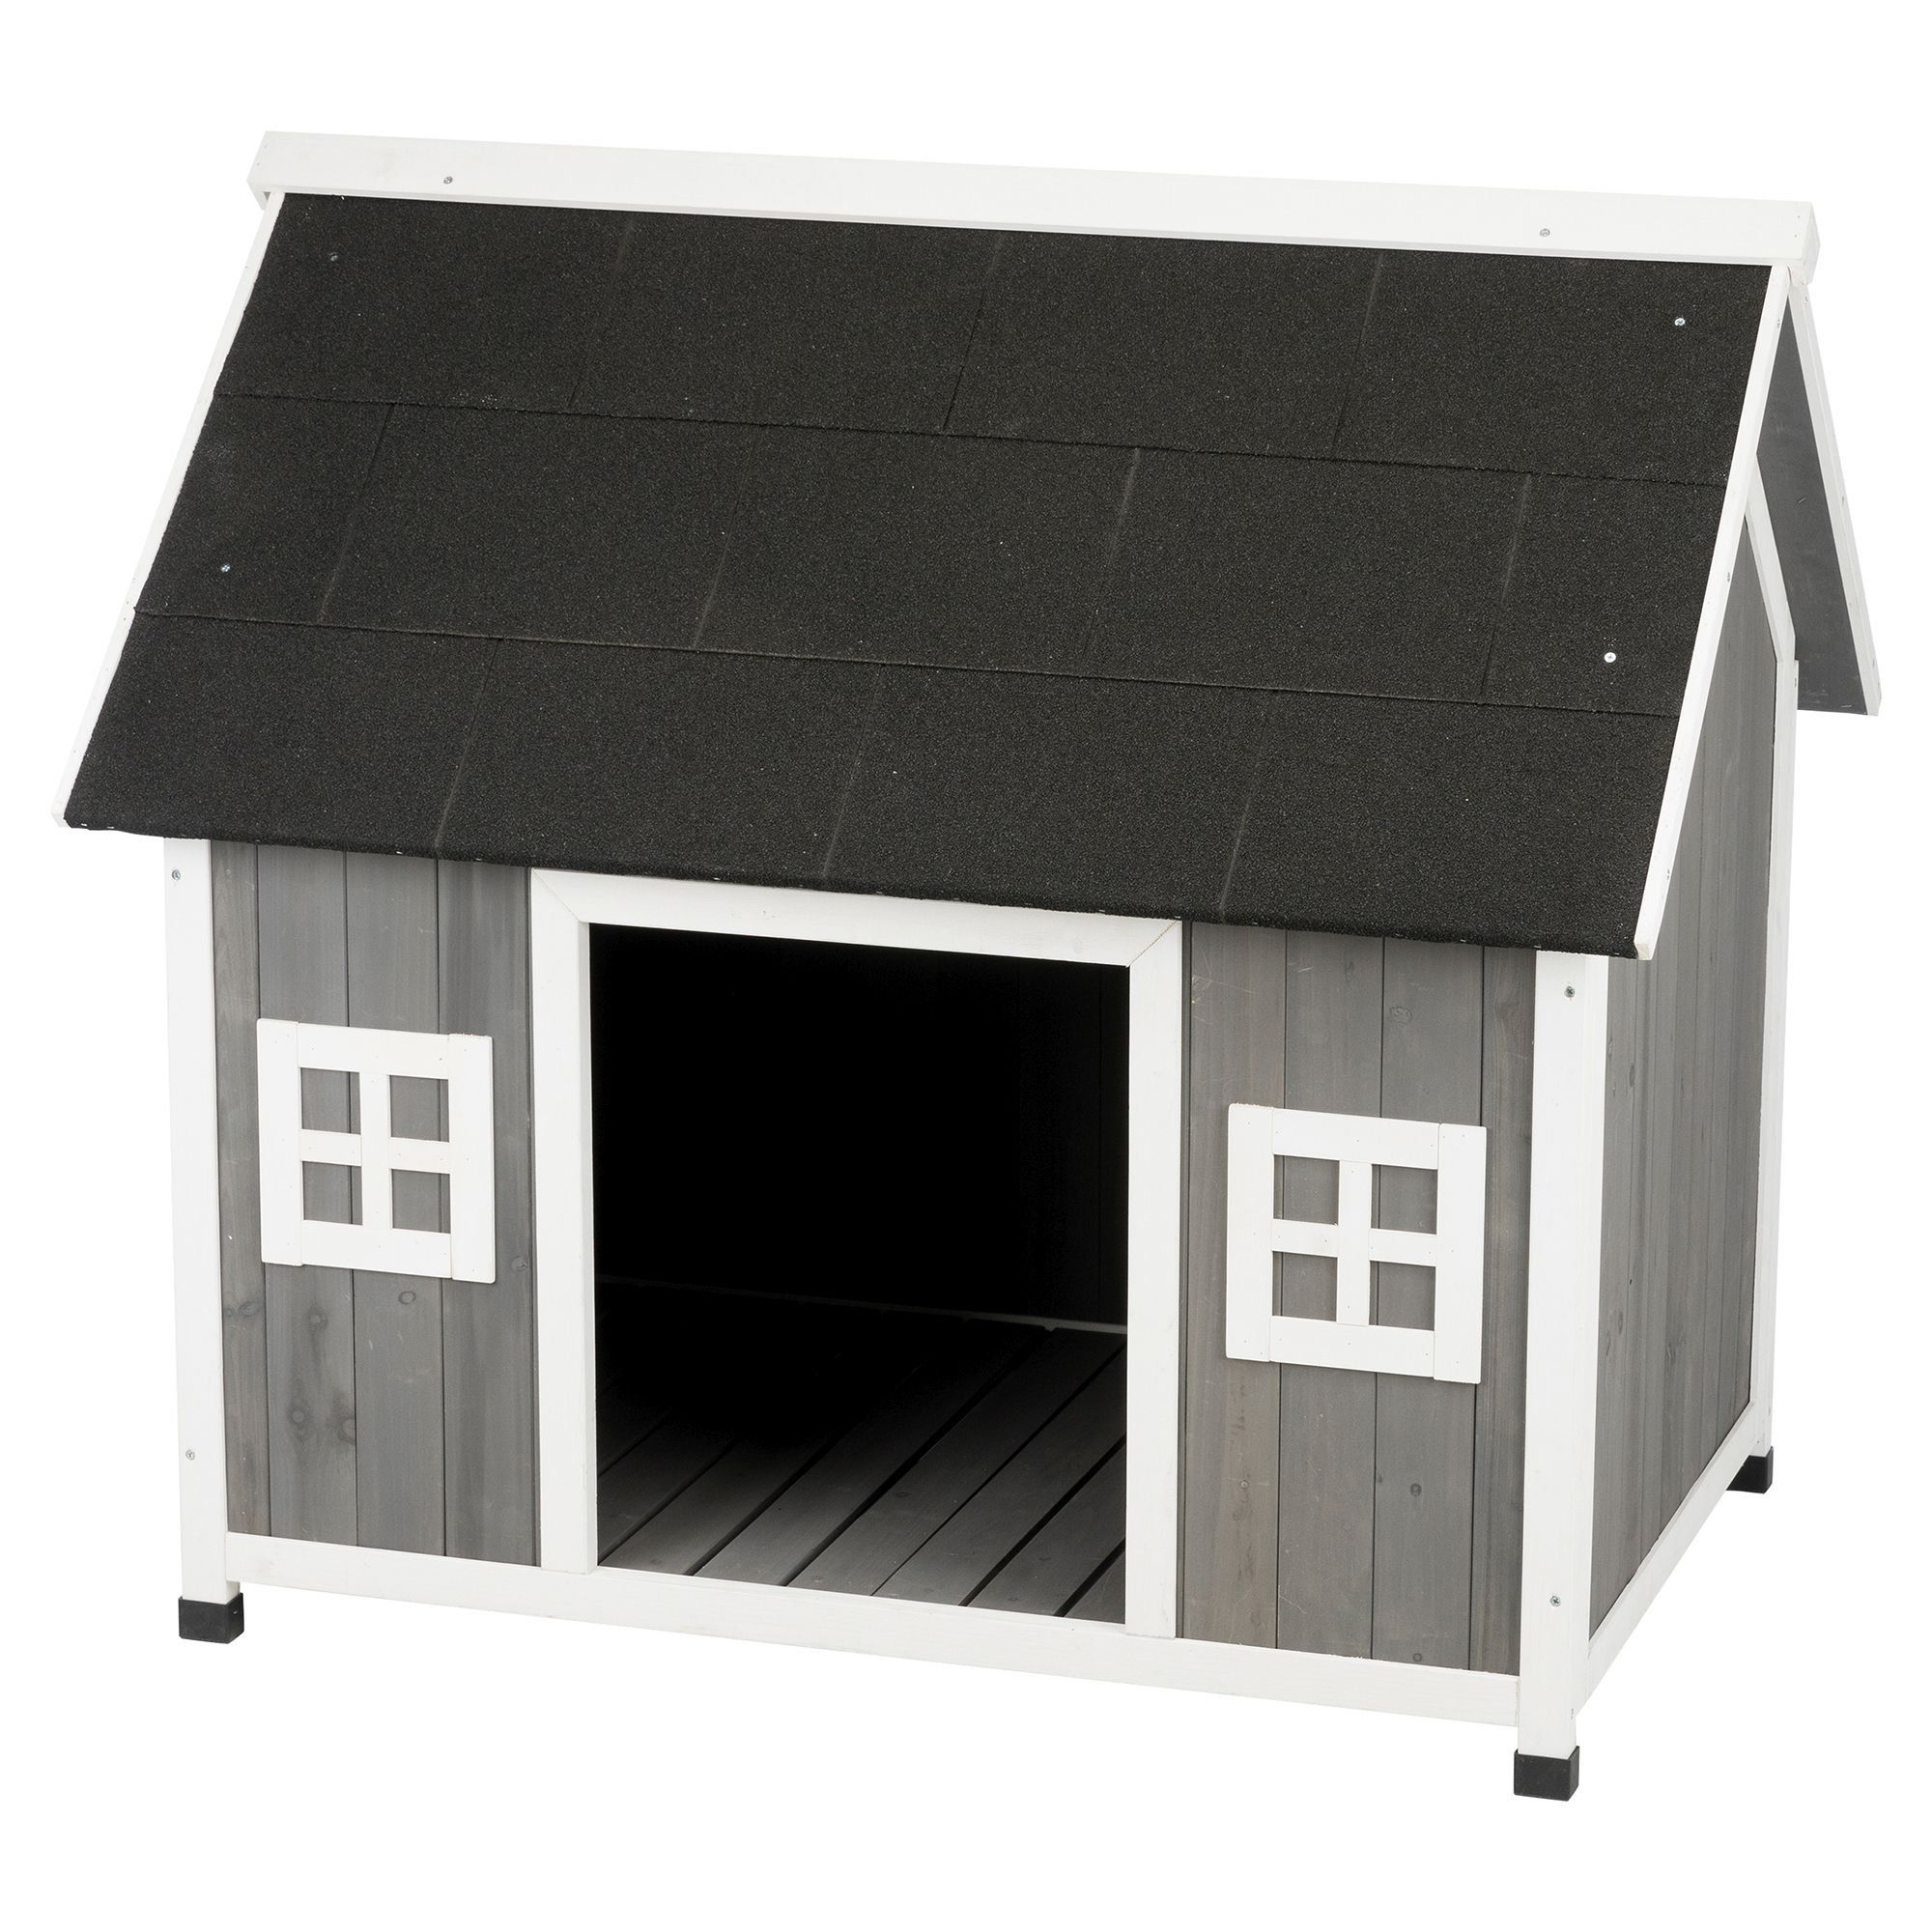 Trixie Natura Barn Style House Dog Kennel 42 75 L X 31 5 W X